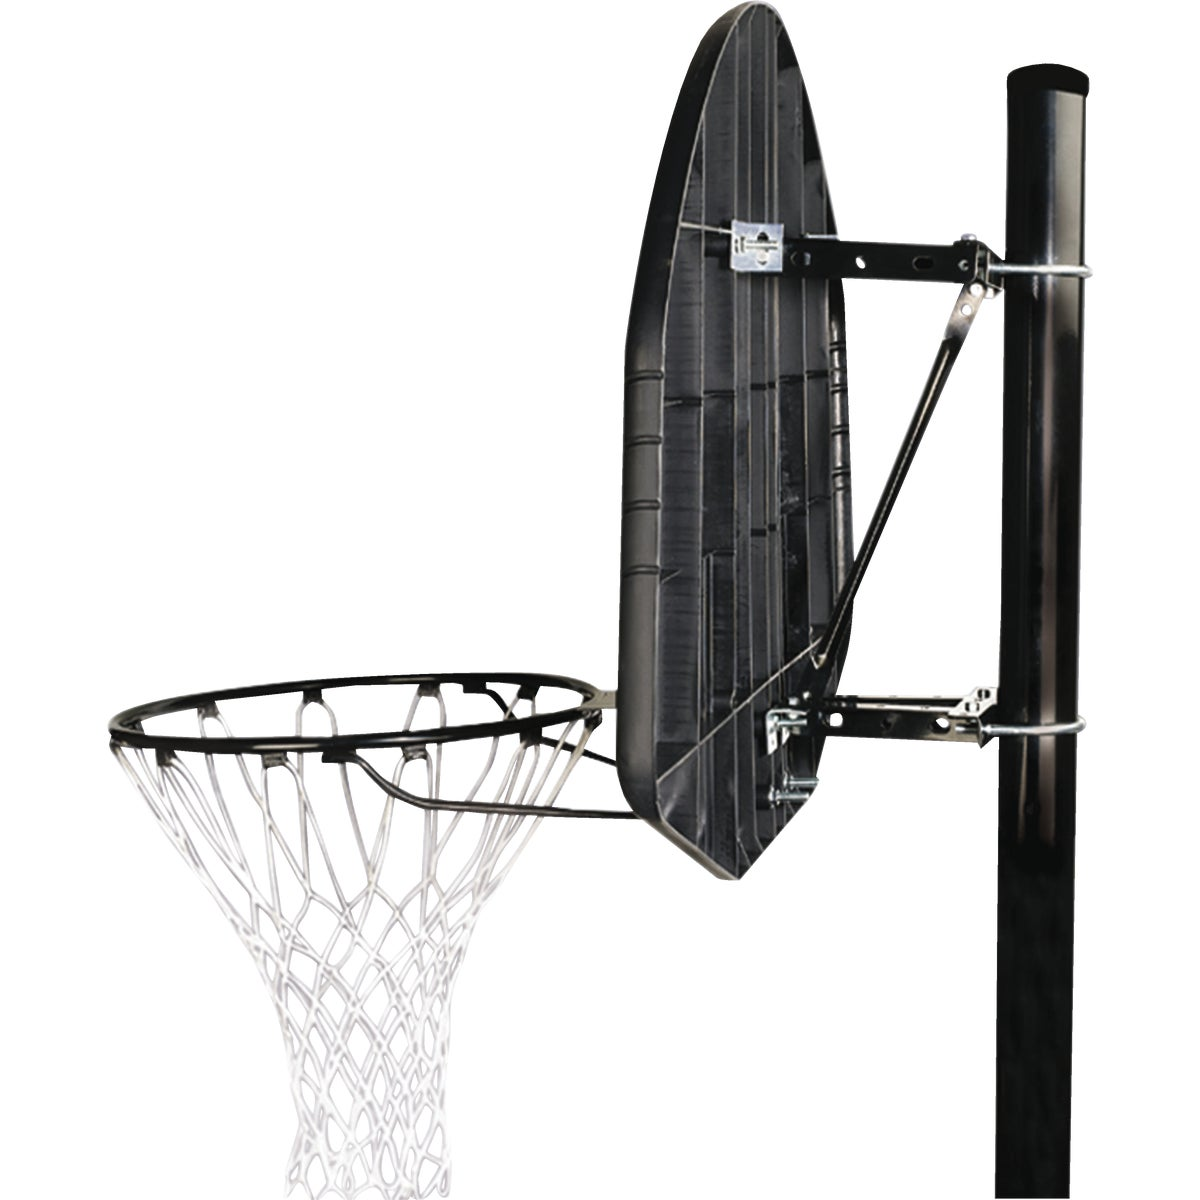 BACKBOARD BRACKET - 8406SR by Huffy Sports